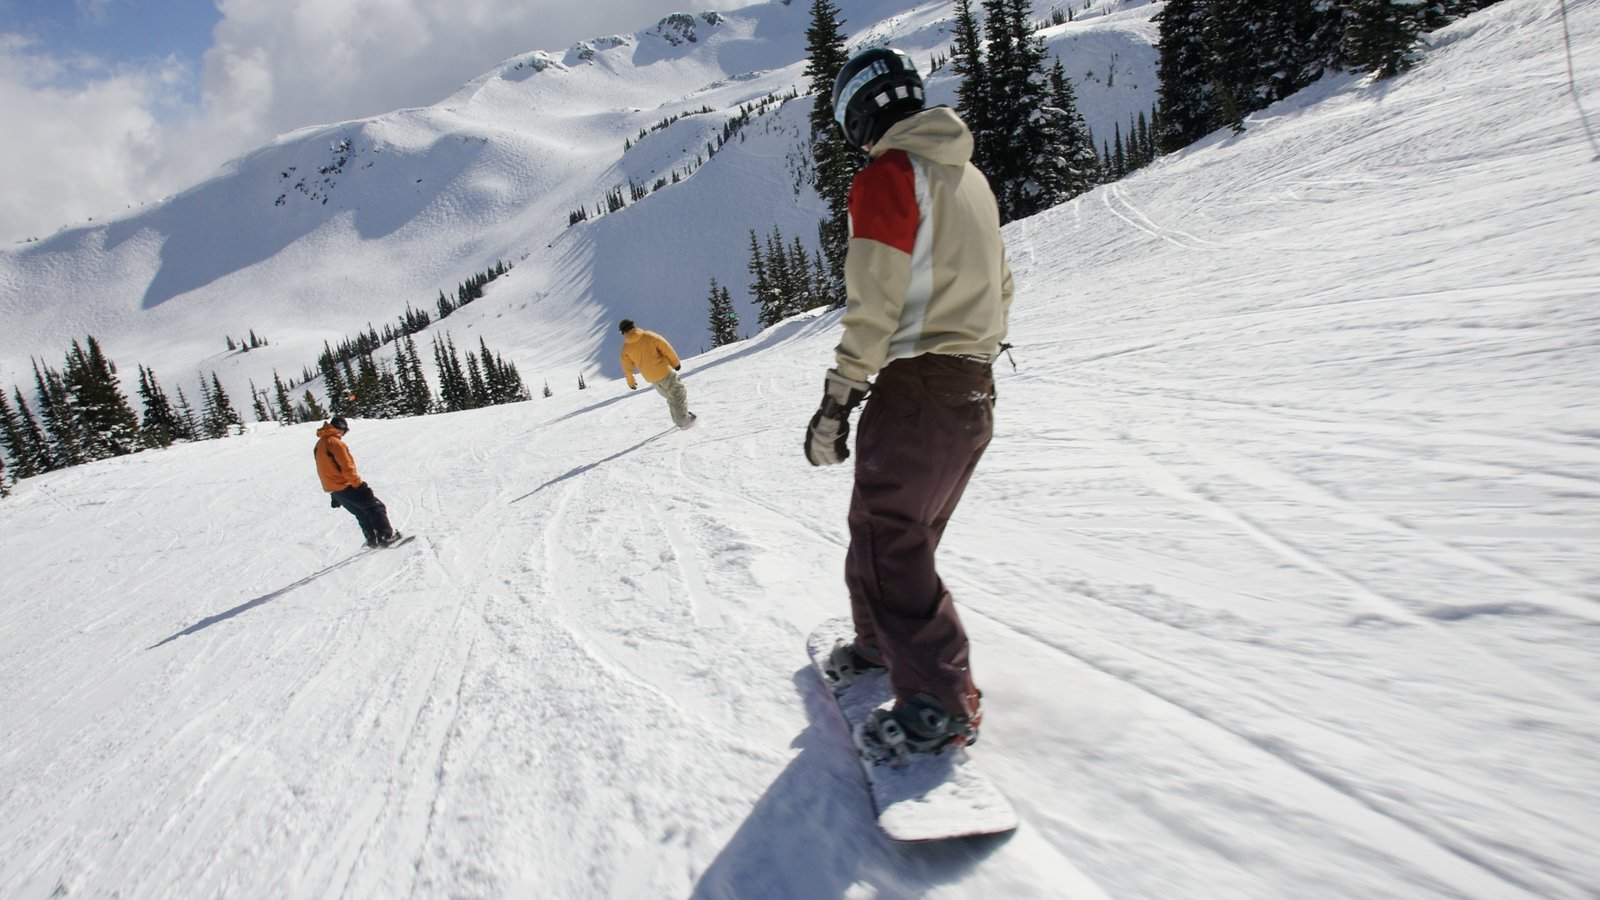 Whistler Blackcomb Ski Resort showing mountains, snow and snow boarding